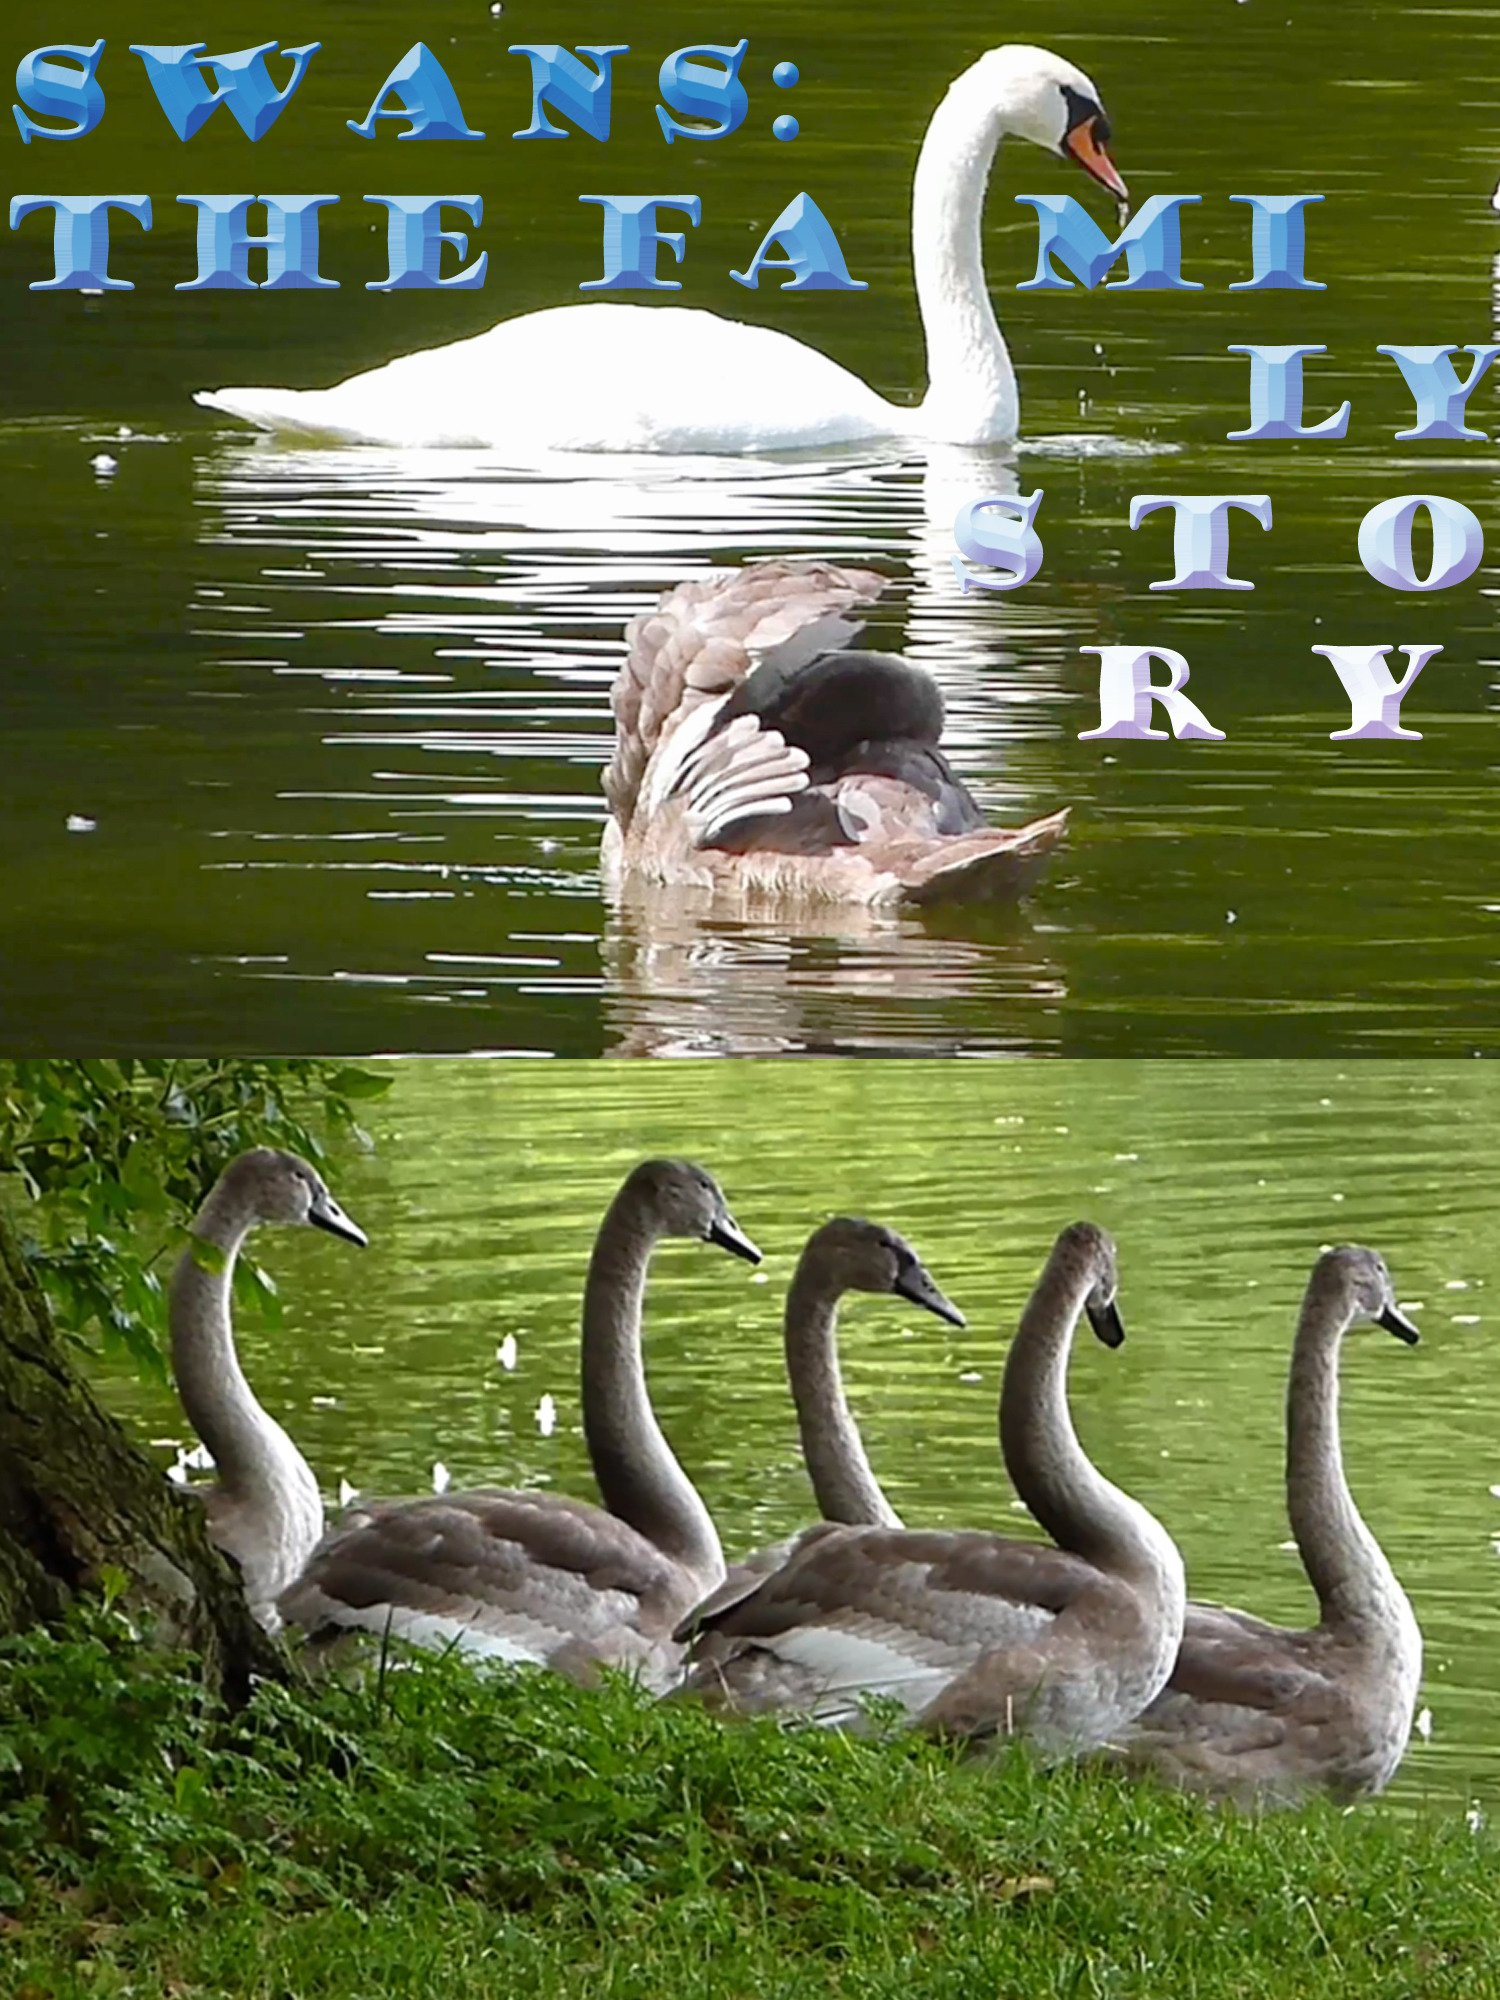 Swans: The family story